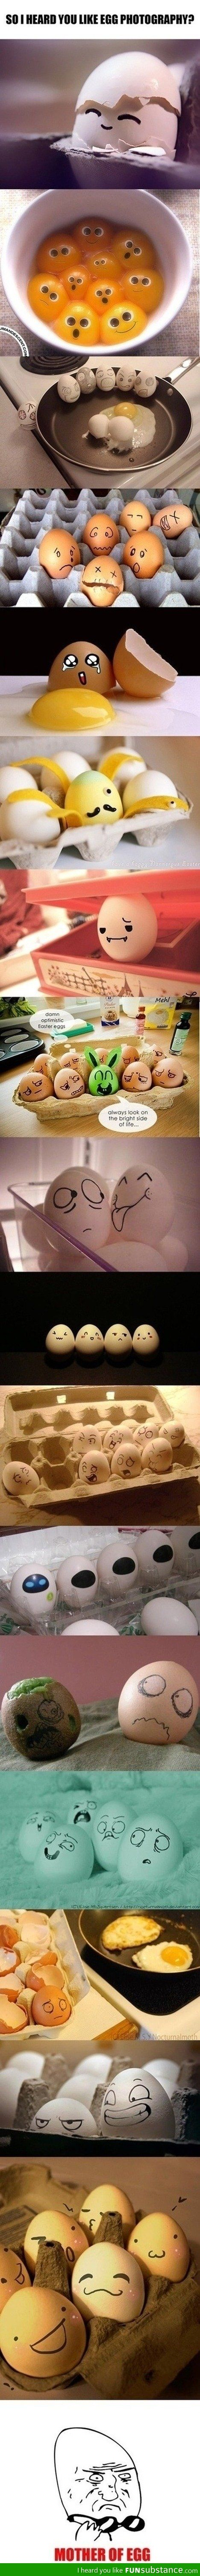 Egg art...The one with the kiwi...Oh my gosh. --so weird but still so funny!